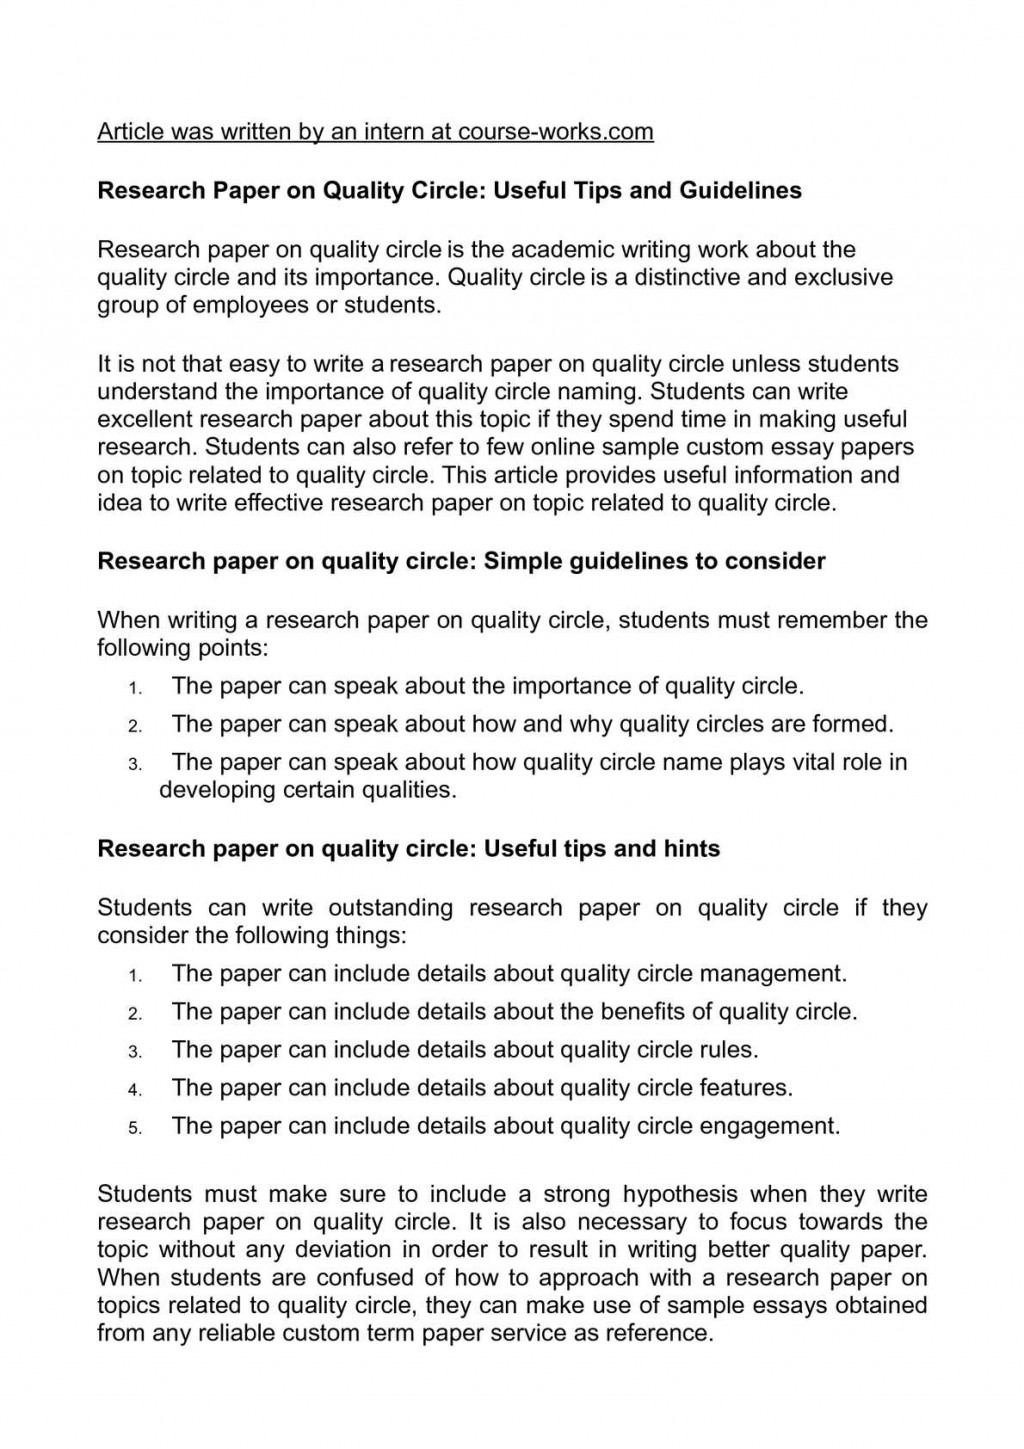 015 Importance Of Term Paper Writing Research Custom Breathtaking Writer Service Large